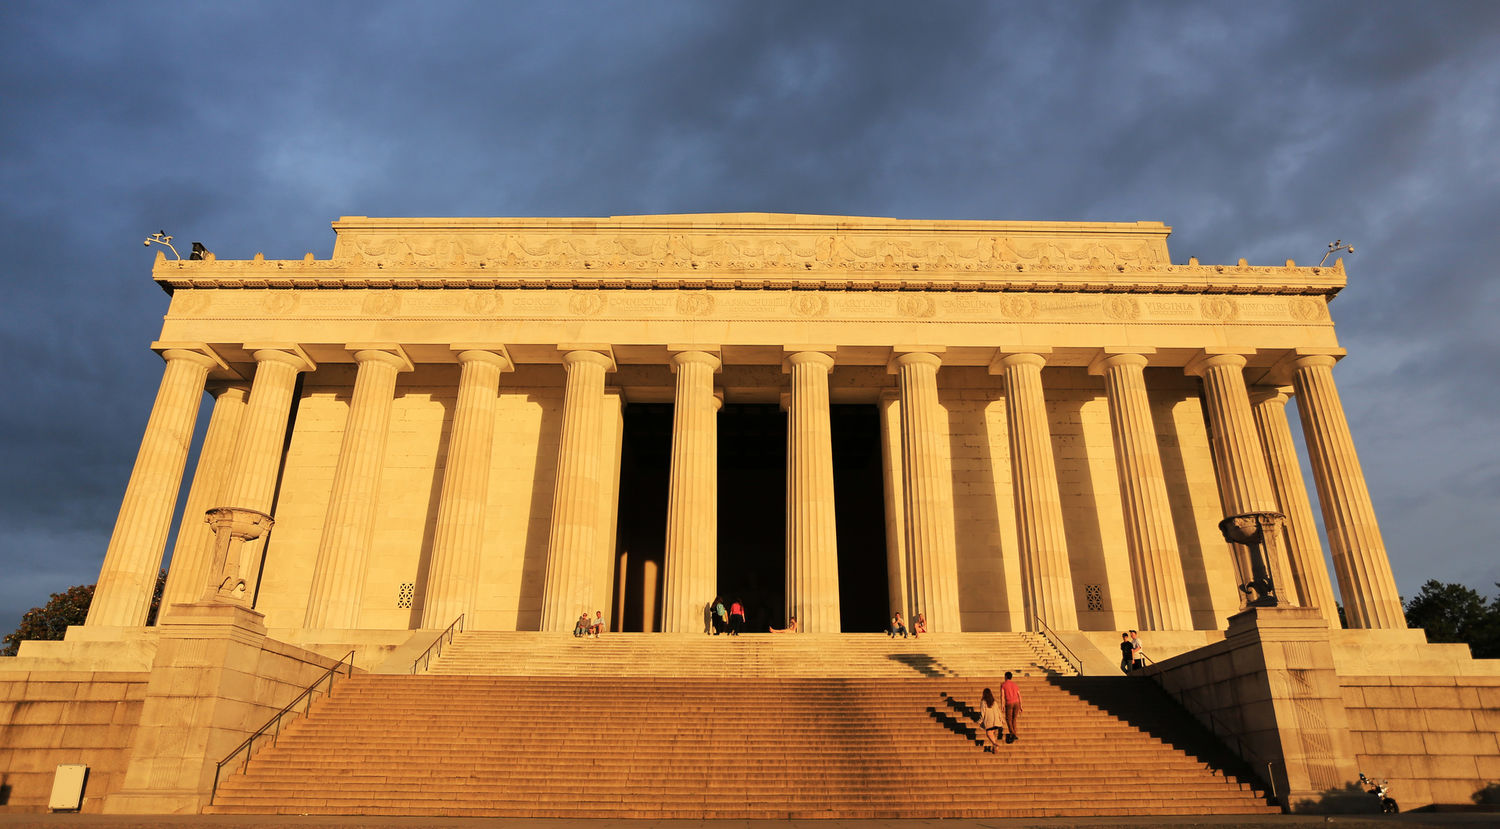 Lincoln Memorial at sunrise, Washington D.C.